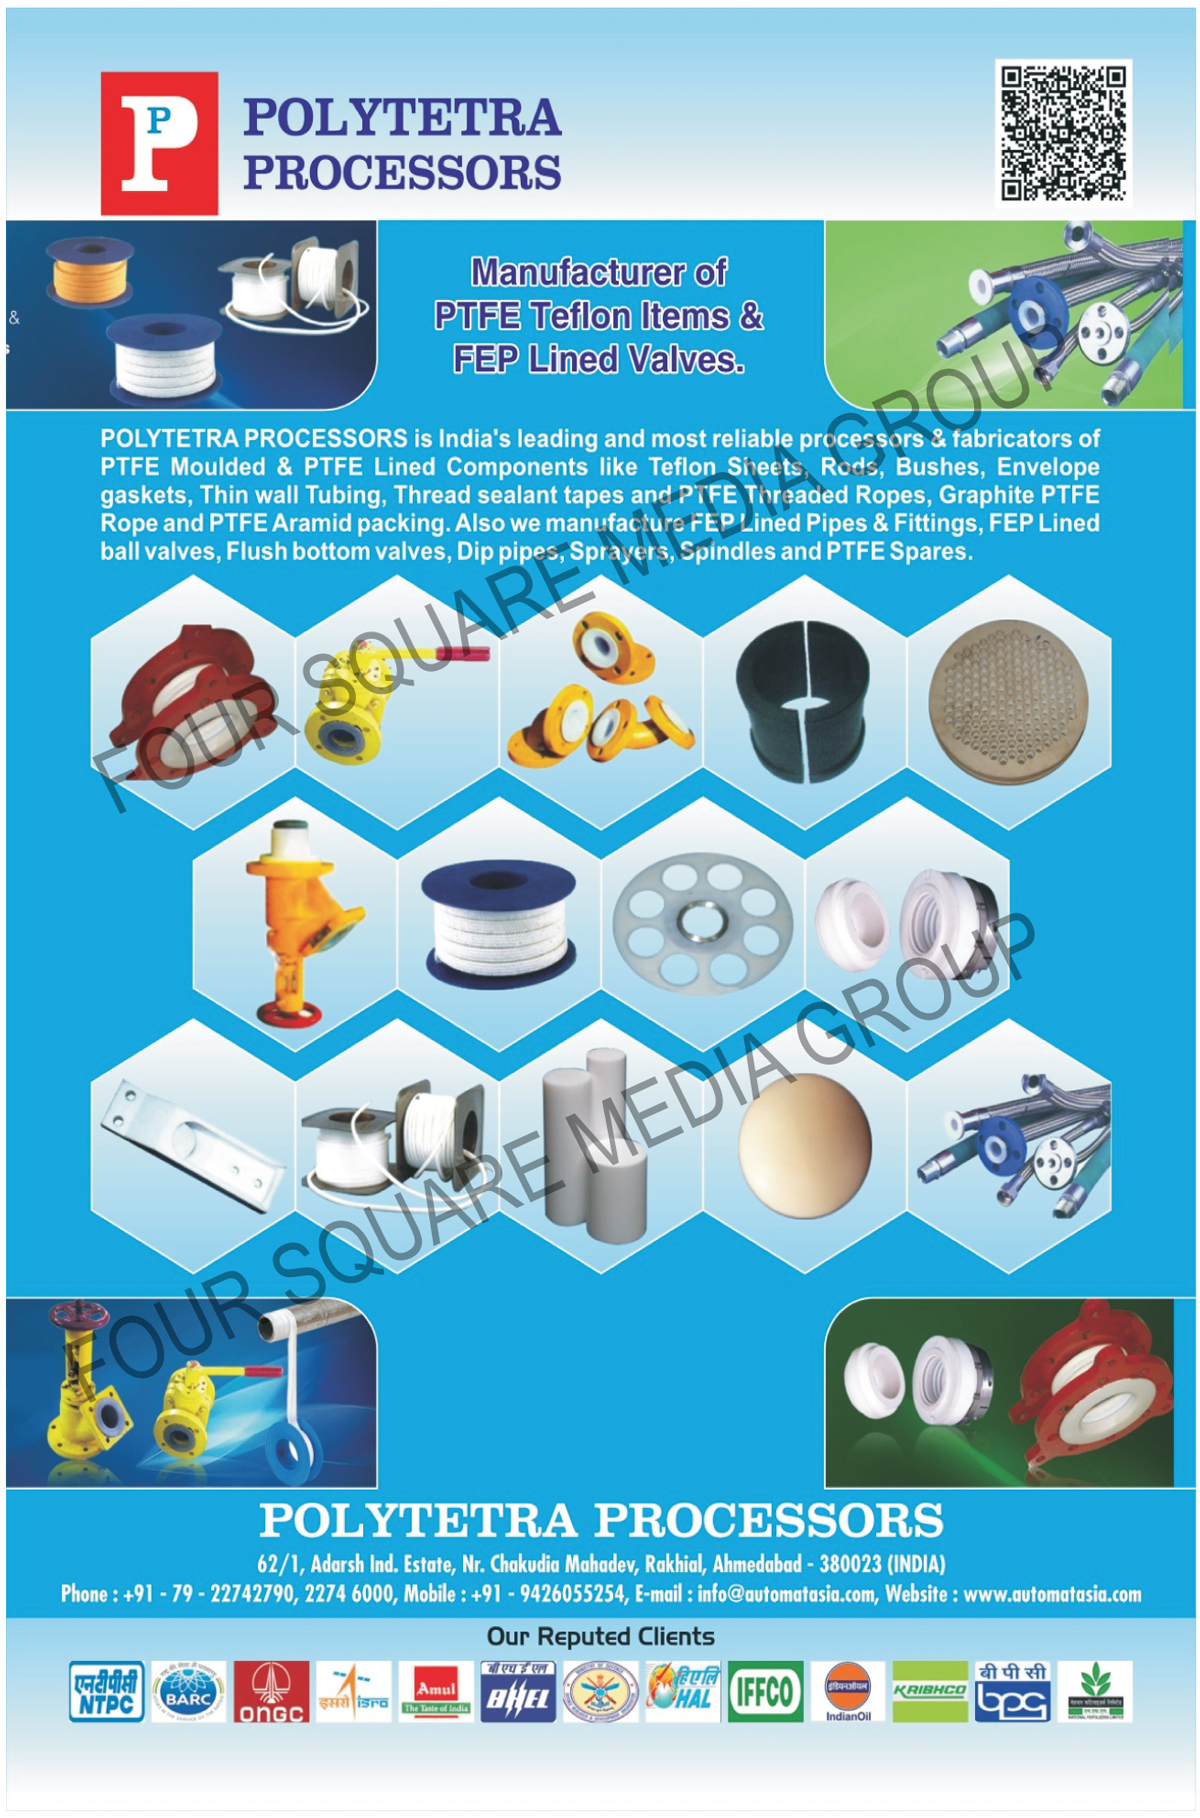 PTFE Moulded Components, PTFE Lined Components, PTFE Teflon Products, FEP Lined Valves, PTFE Teflon Sheets, PTFE Teflon Rods, Bushes, PTFE Teflon Envelope Gaskets, Thin Wall Tubings, PTFE Teflon Thread Sealant Tapes, PTFE Threaded Ropes, Graphite PTFE Rope, PTFE Aramid Packings, FEP Lined Pipes, FEP Lined Fittings, FEP Lined Ball Valves, Flush Bottom Valves, DIP Pipes, Sprayers, Spindles, PTFE Spares